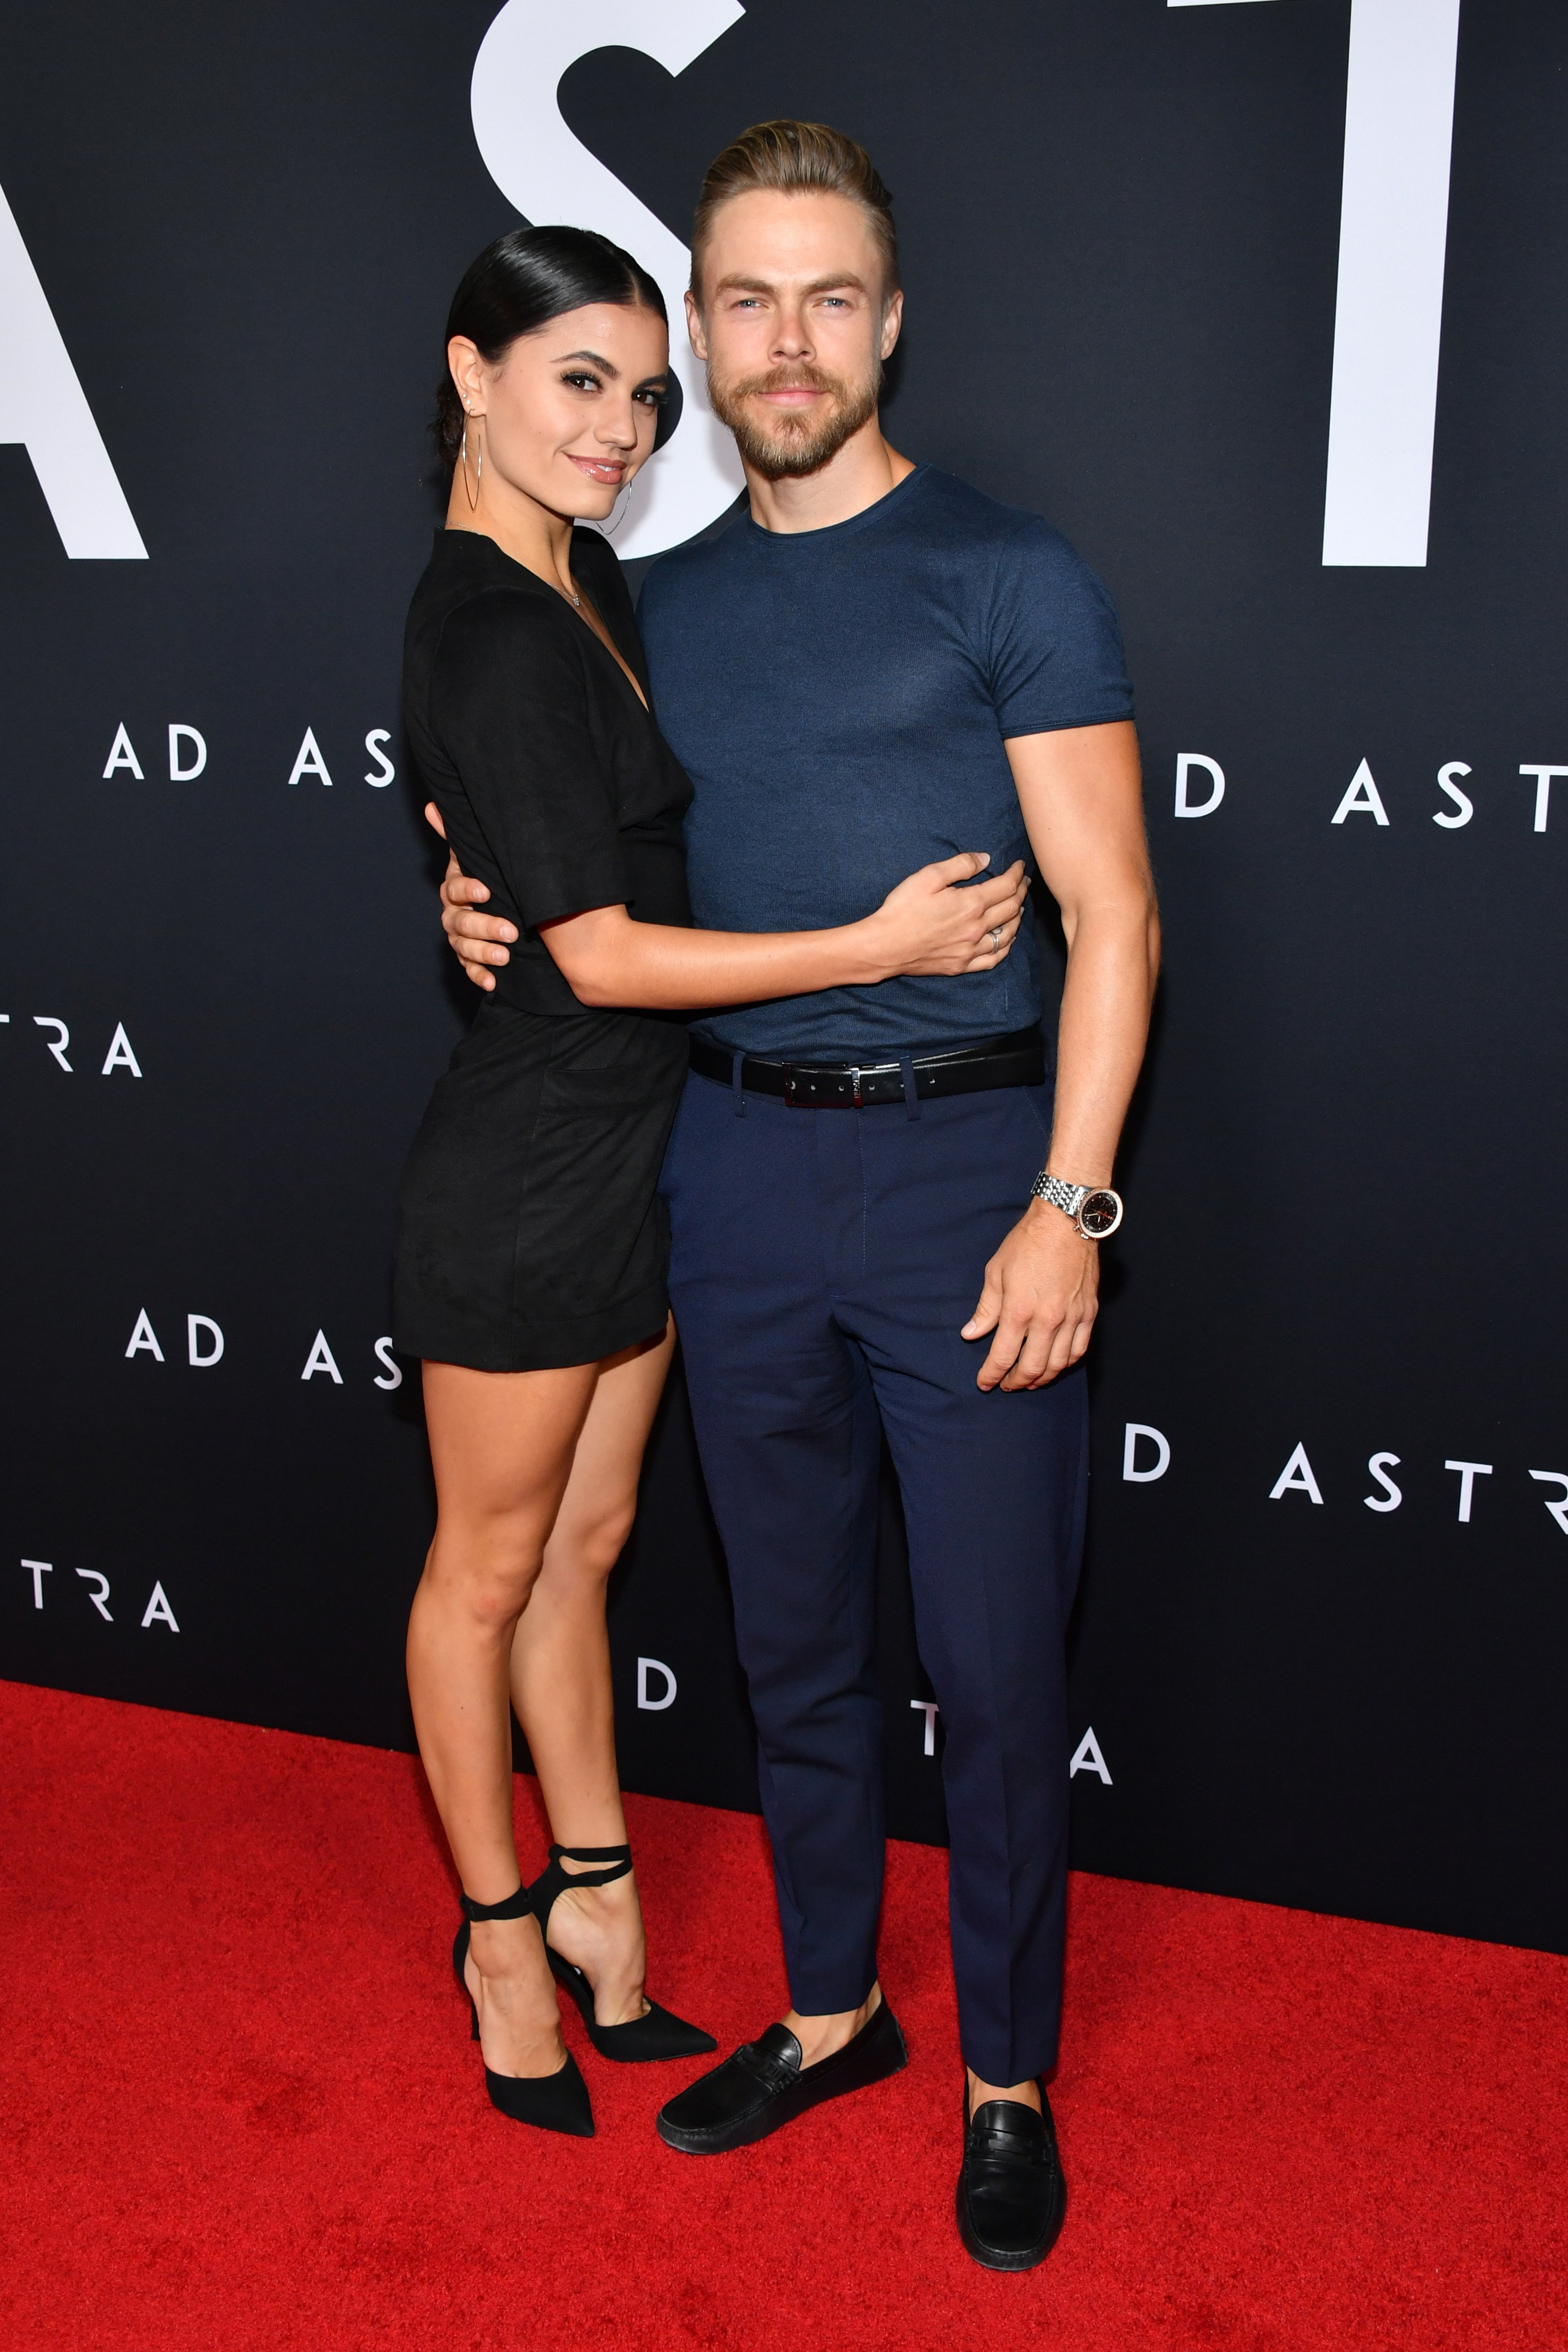 "Hayley Erbert and Derek Hough attend the premiere of ""Ad Astra"" in Los Angeles, California on September 18, 2019 